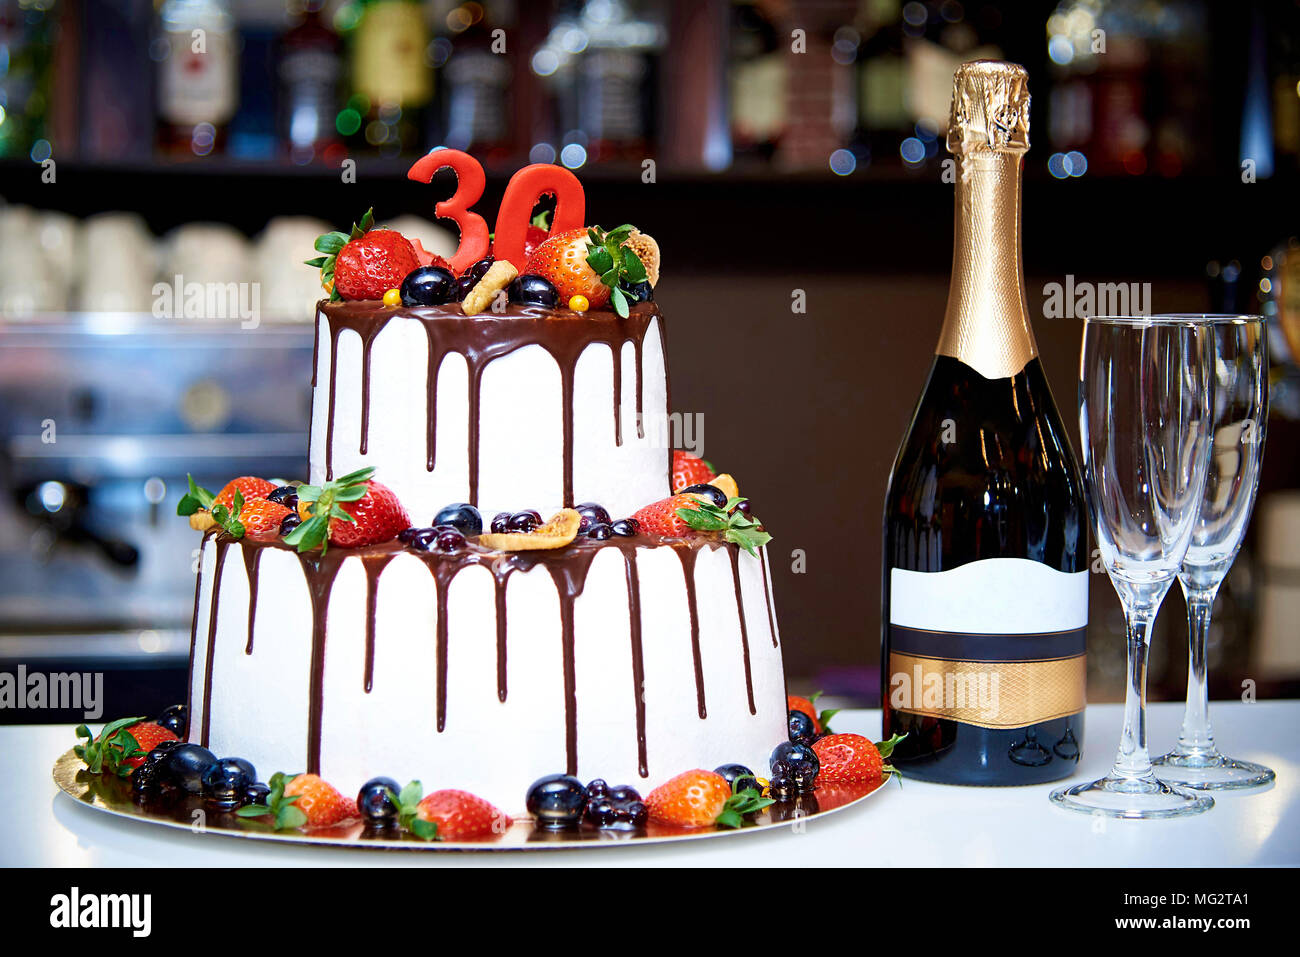 A two-tiered white cake with fresh fruit and chocolate stands next to a bottle of champagne and two bokalam on the background of a blurred bar in a re - Stock Image